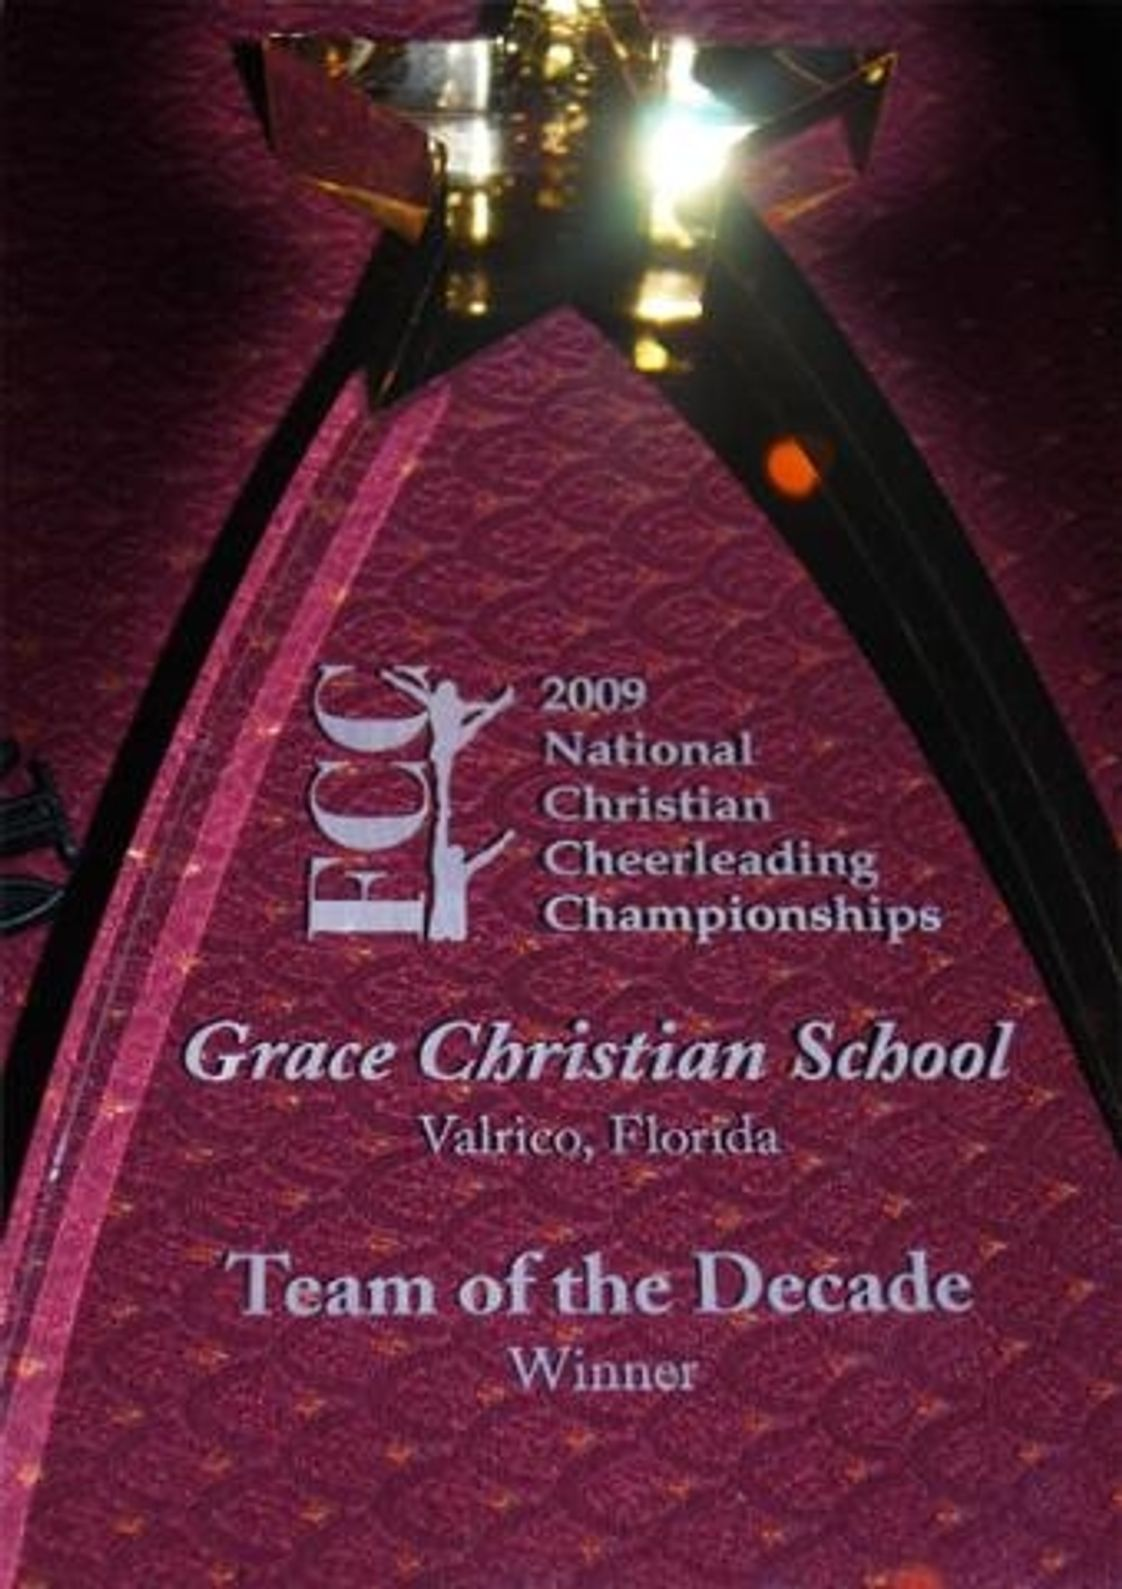 Grace Christian School Photo - We are so proud of our Cheerleaders and coaches - Winners of Cheerleading Team of the Decade!